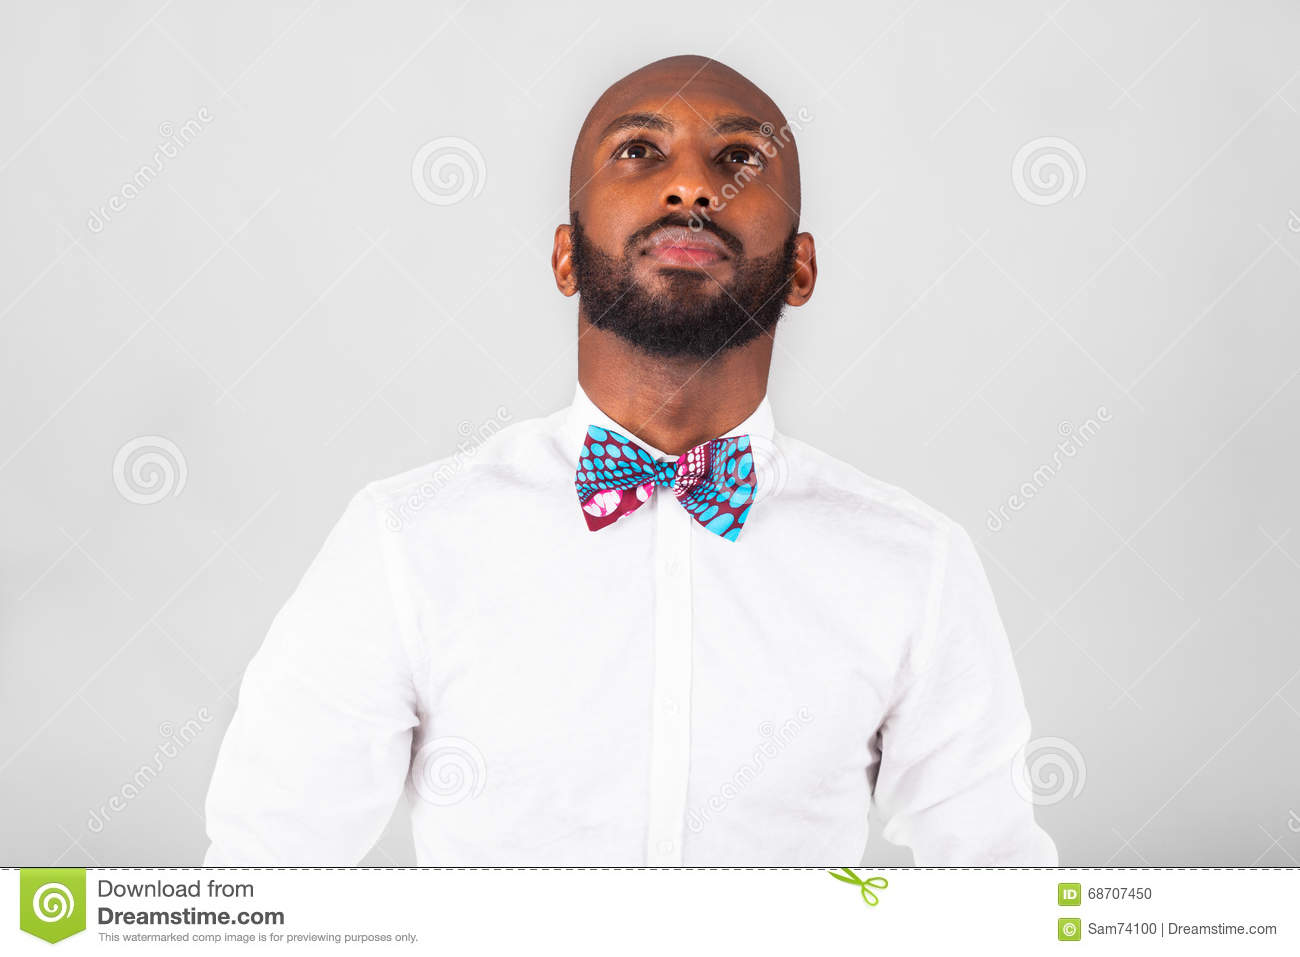 09466a85d73 African American Man Wearing An Tradional Bow Tie Stock Photo ...